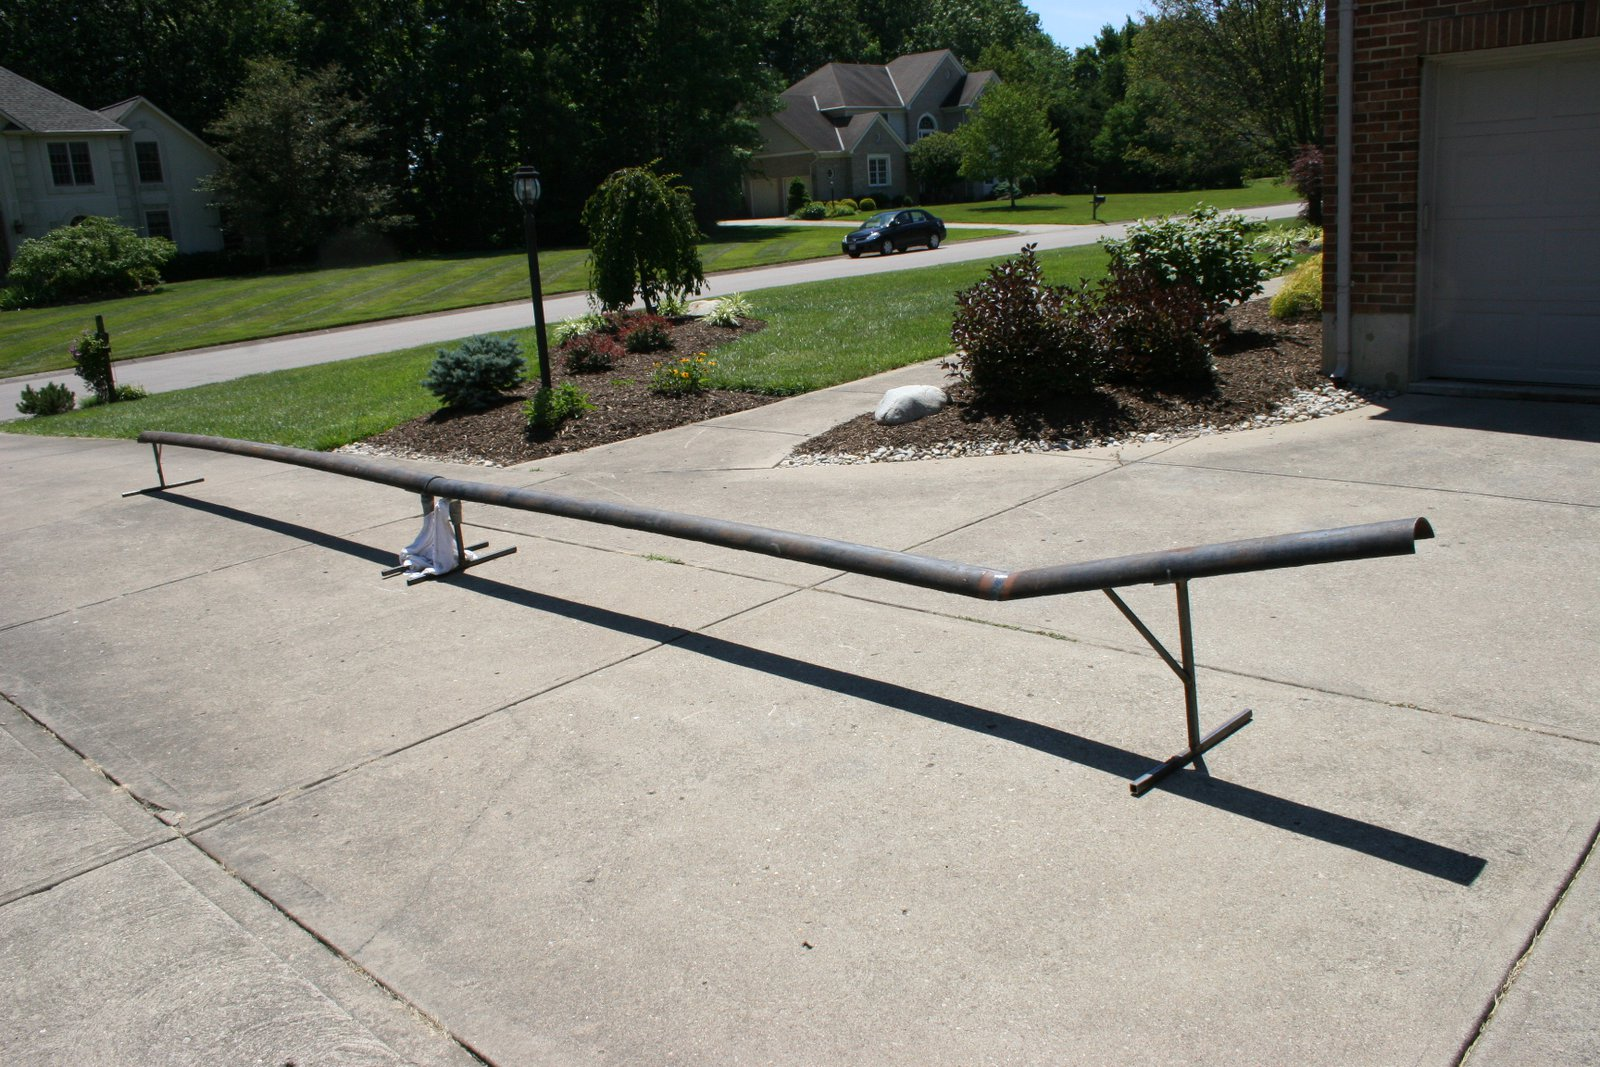 new rail 30ft long